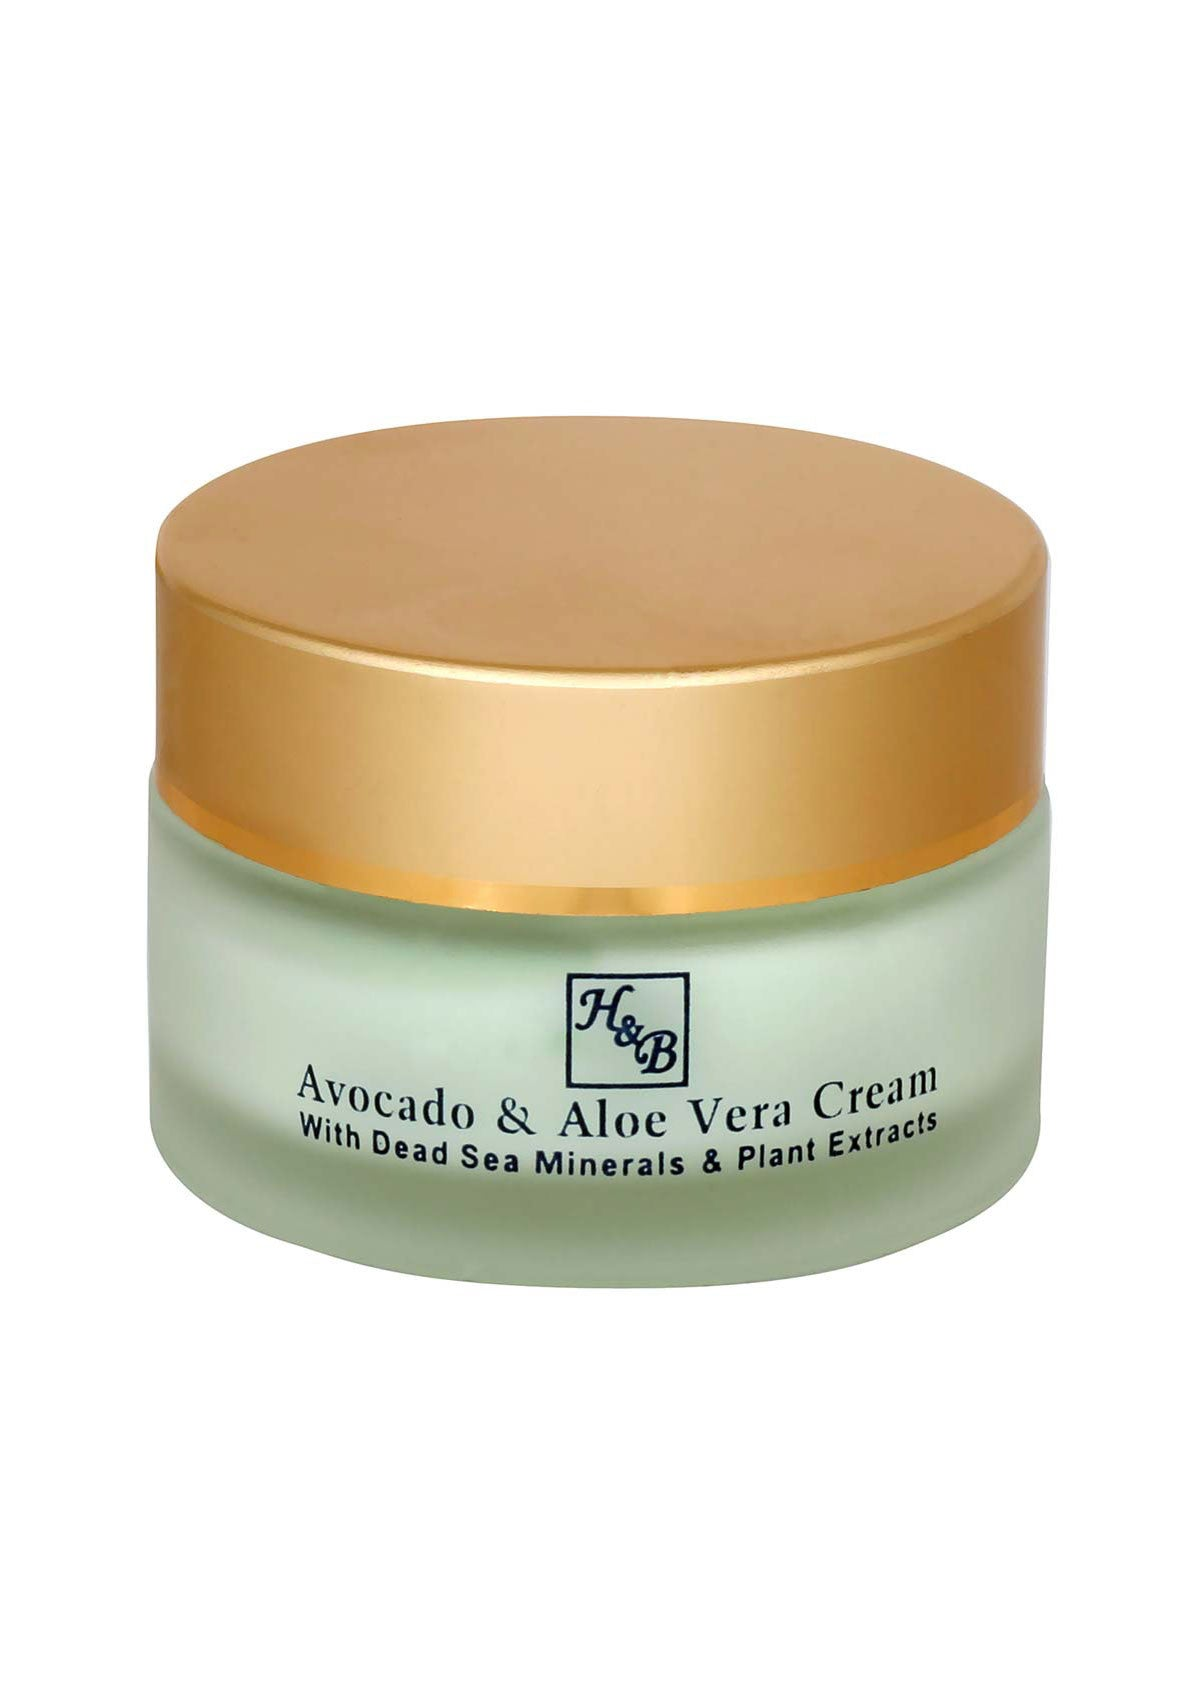 Health & Beauty - Avocado & Aloe Vera Cream - DeadSeaShop.co.uk